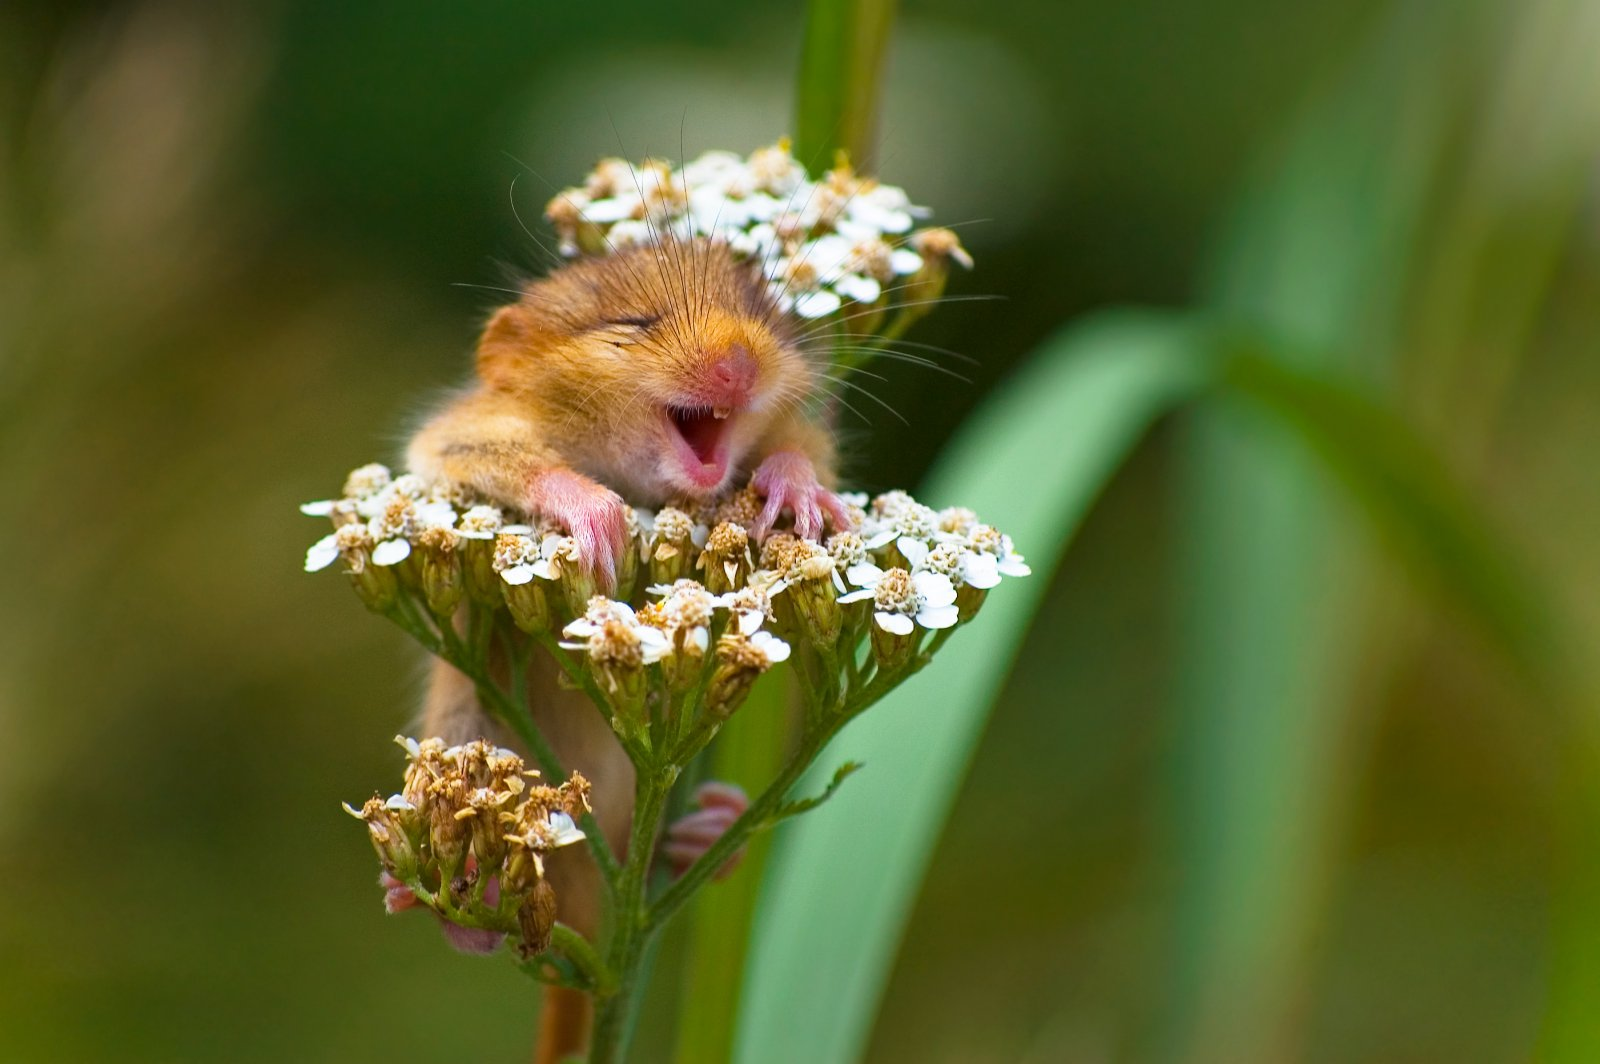 """The Laughing Dormouse"", © Andrea Zampatti, Winner of the Alex Walker's Serian On The Land category, Comedy Wildlife Photography Awards"